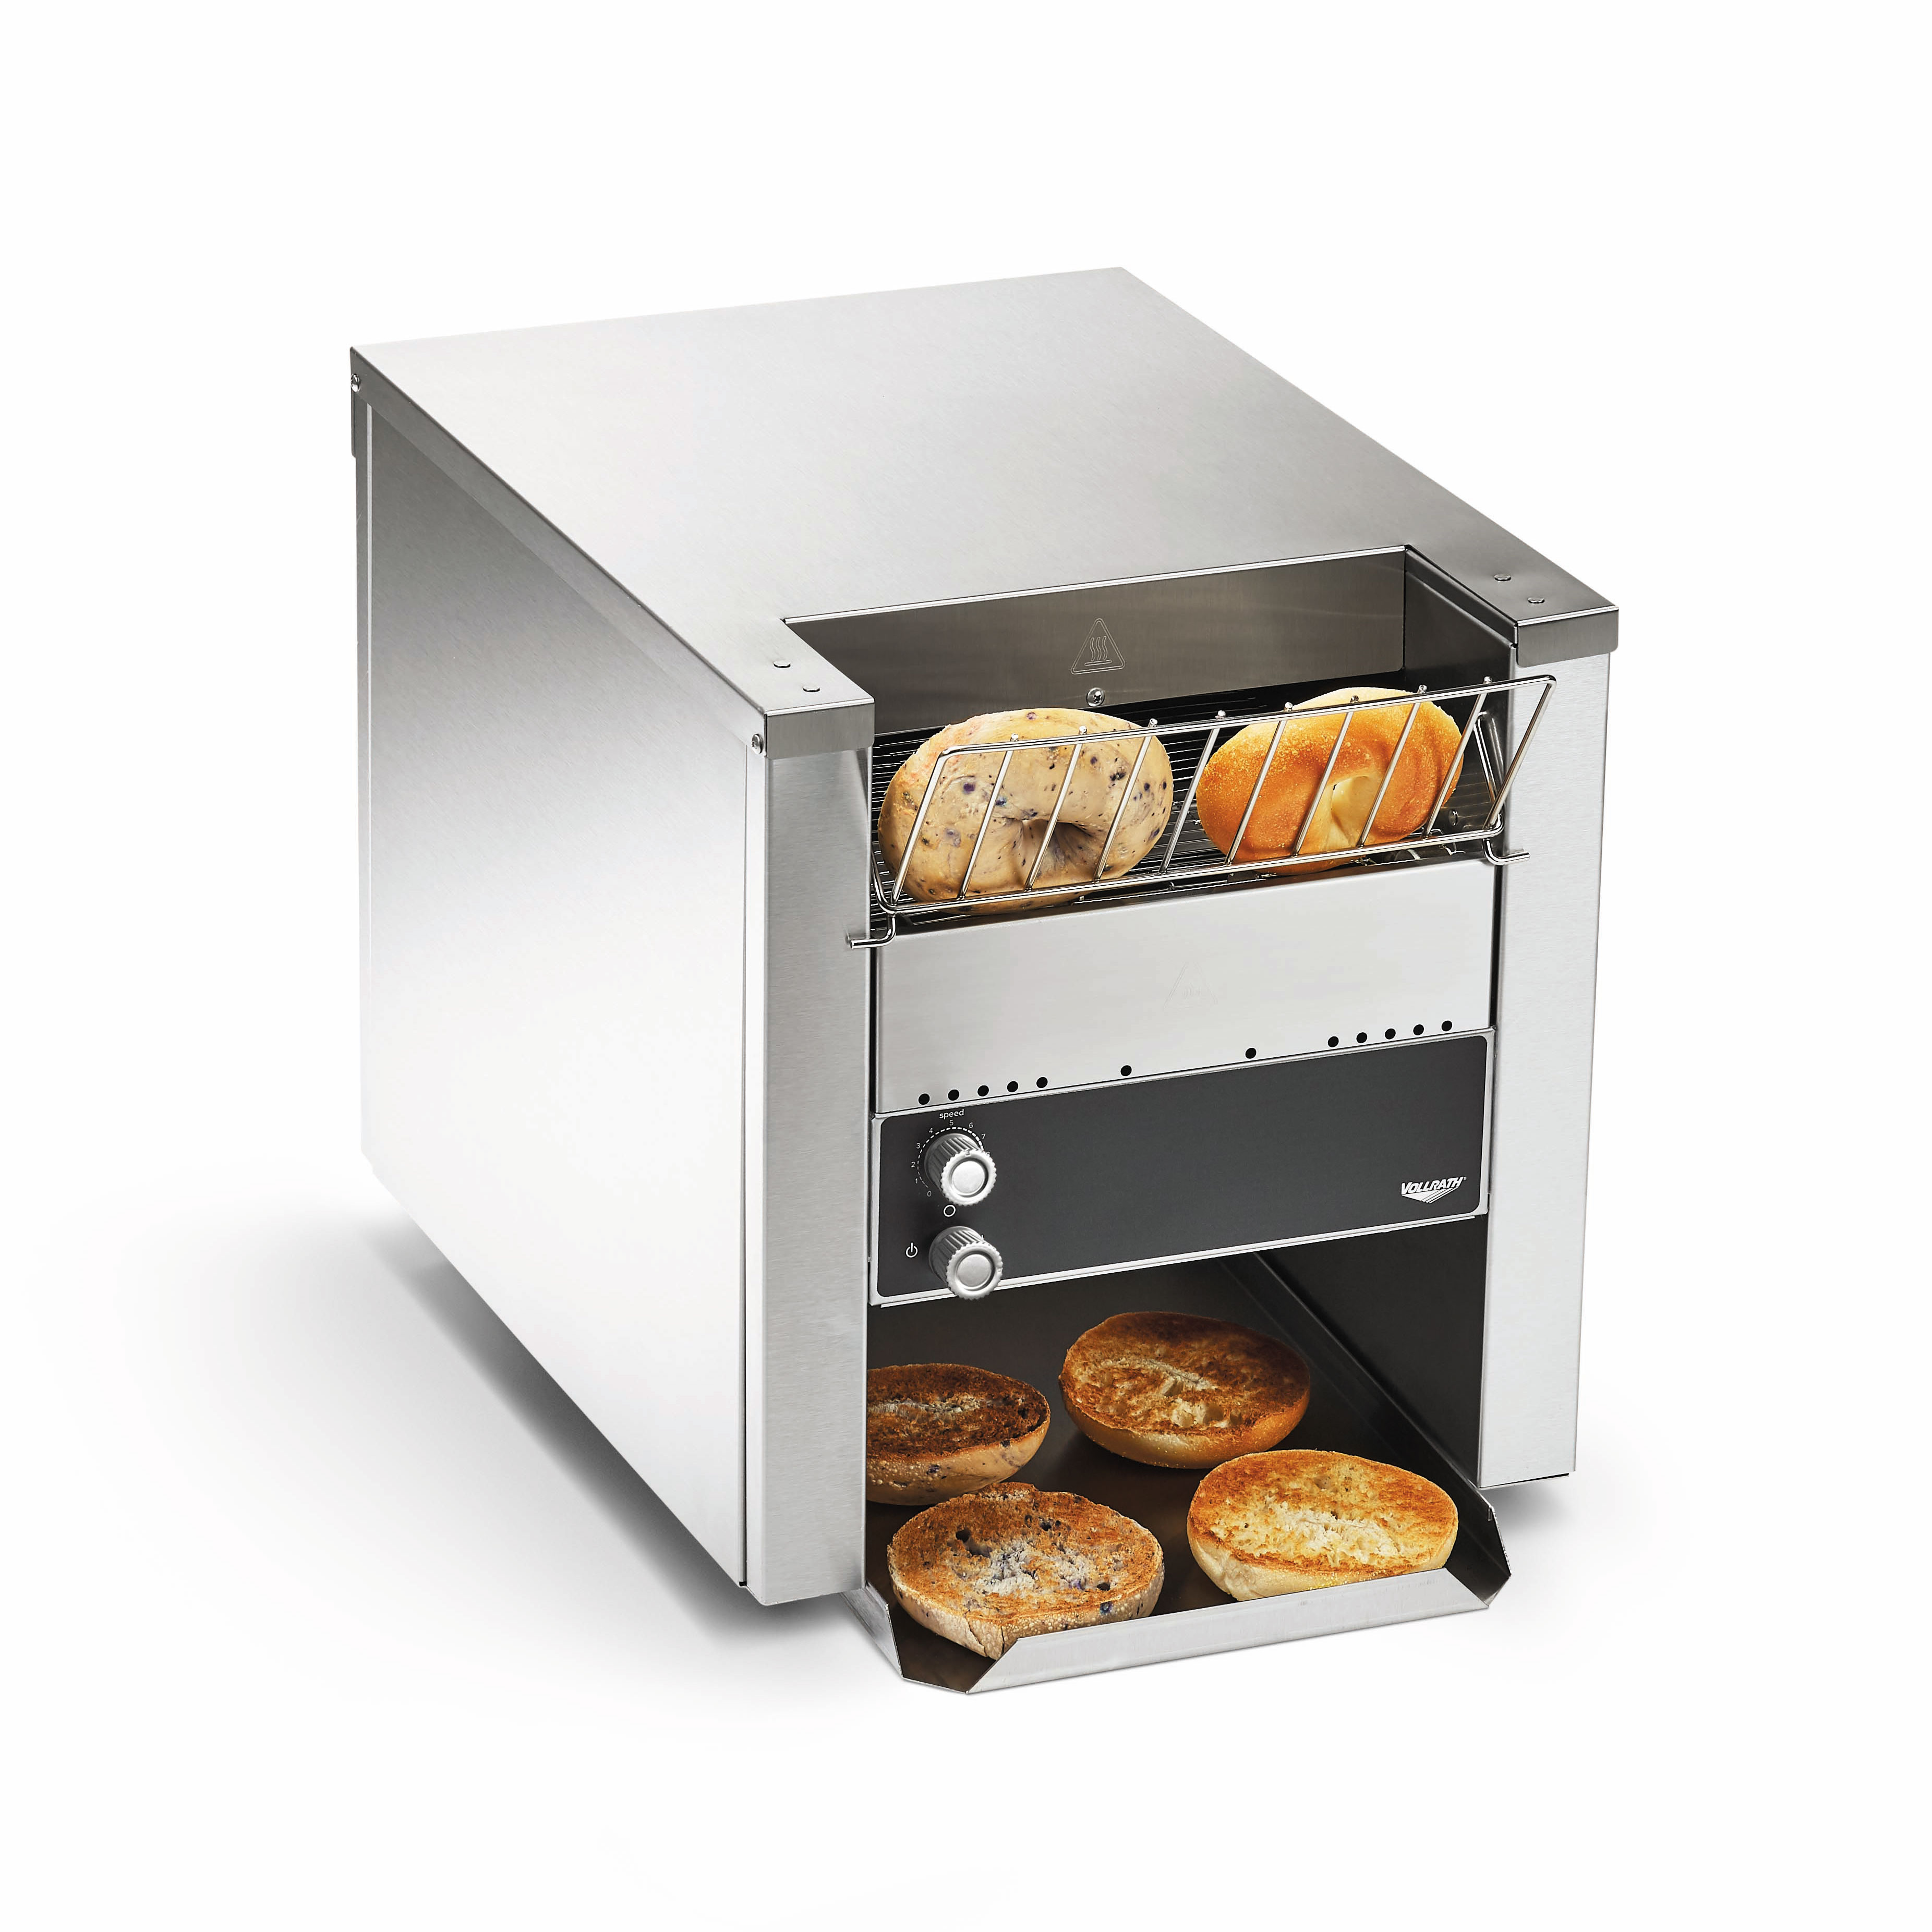 Vollrath CT4B-2081200 toaster, conveyor type